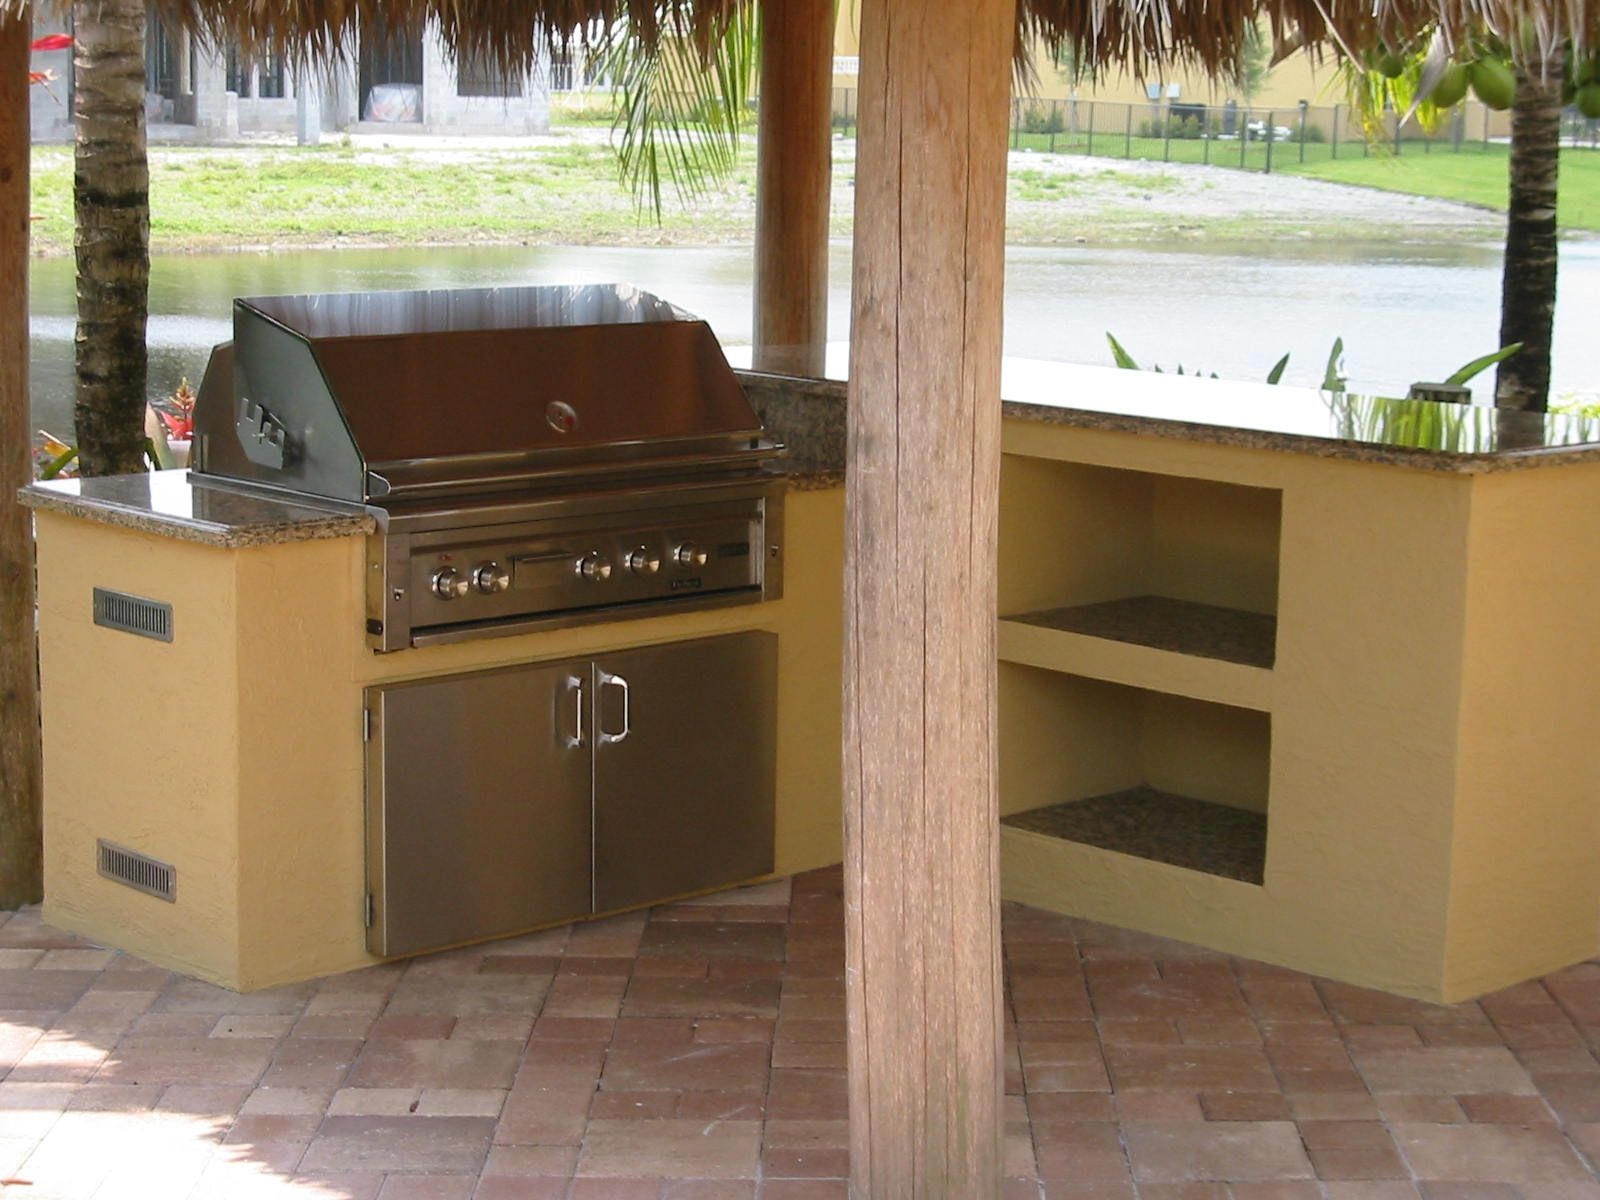 Backyard barbecue ideas lynx built in bbq grill in for Built in barbecue grill ideas